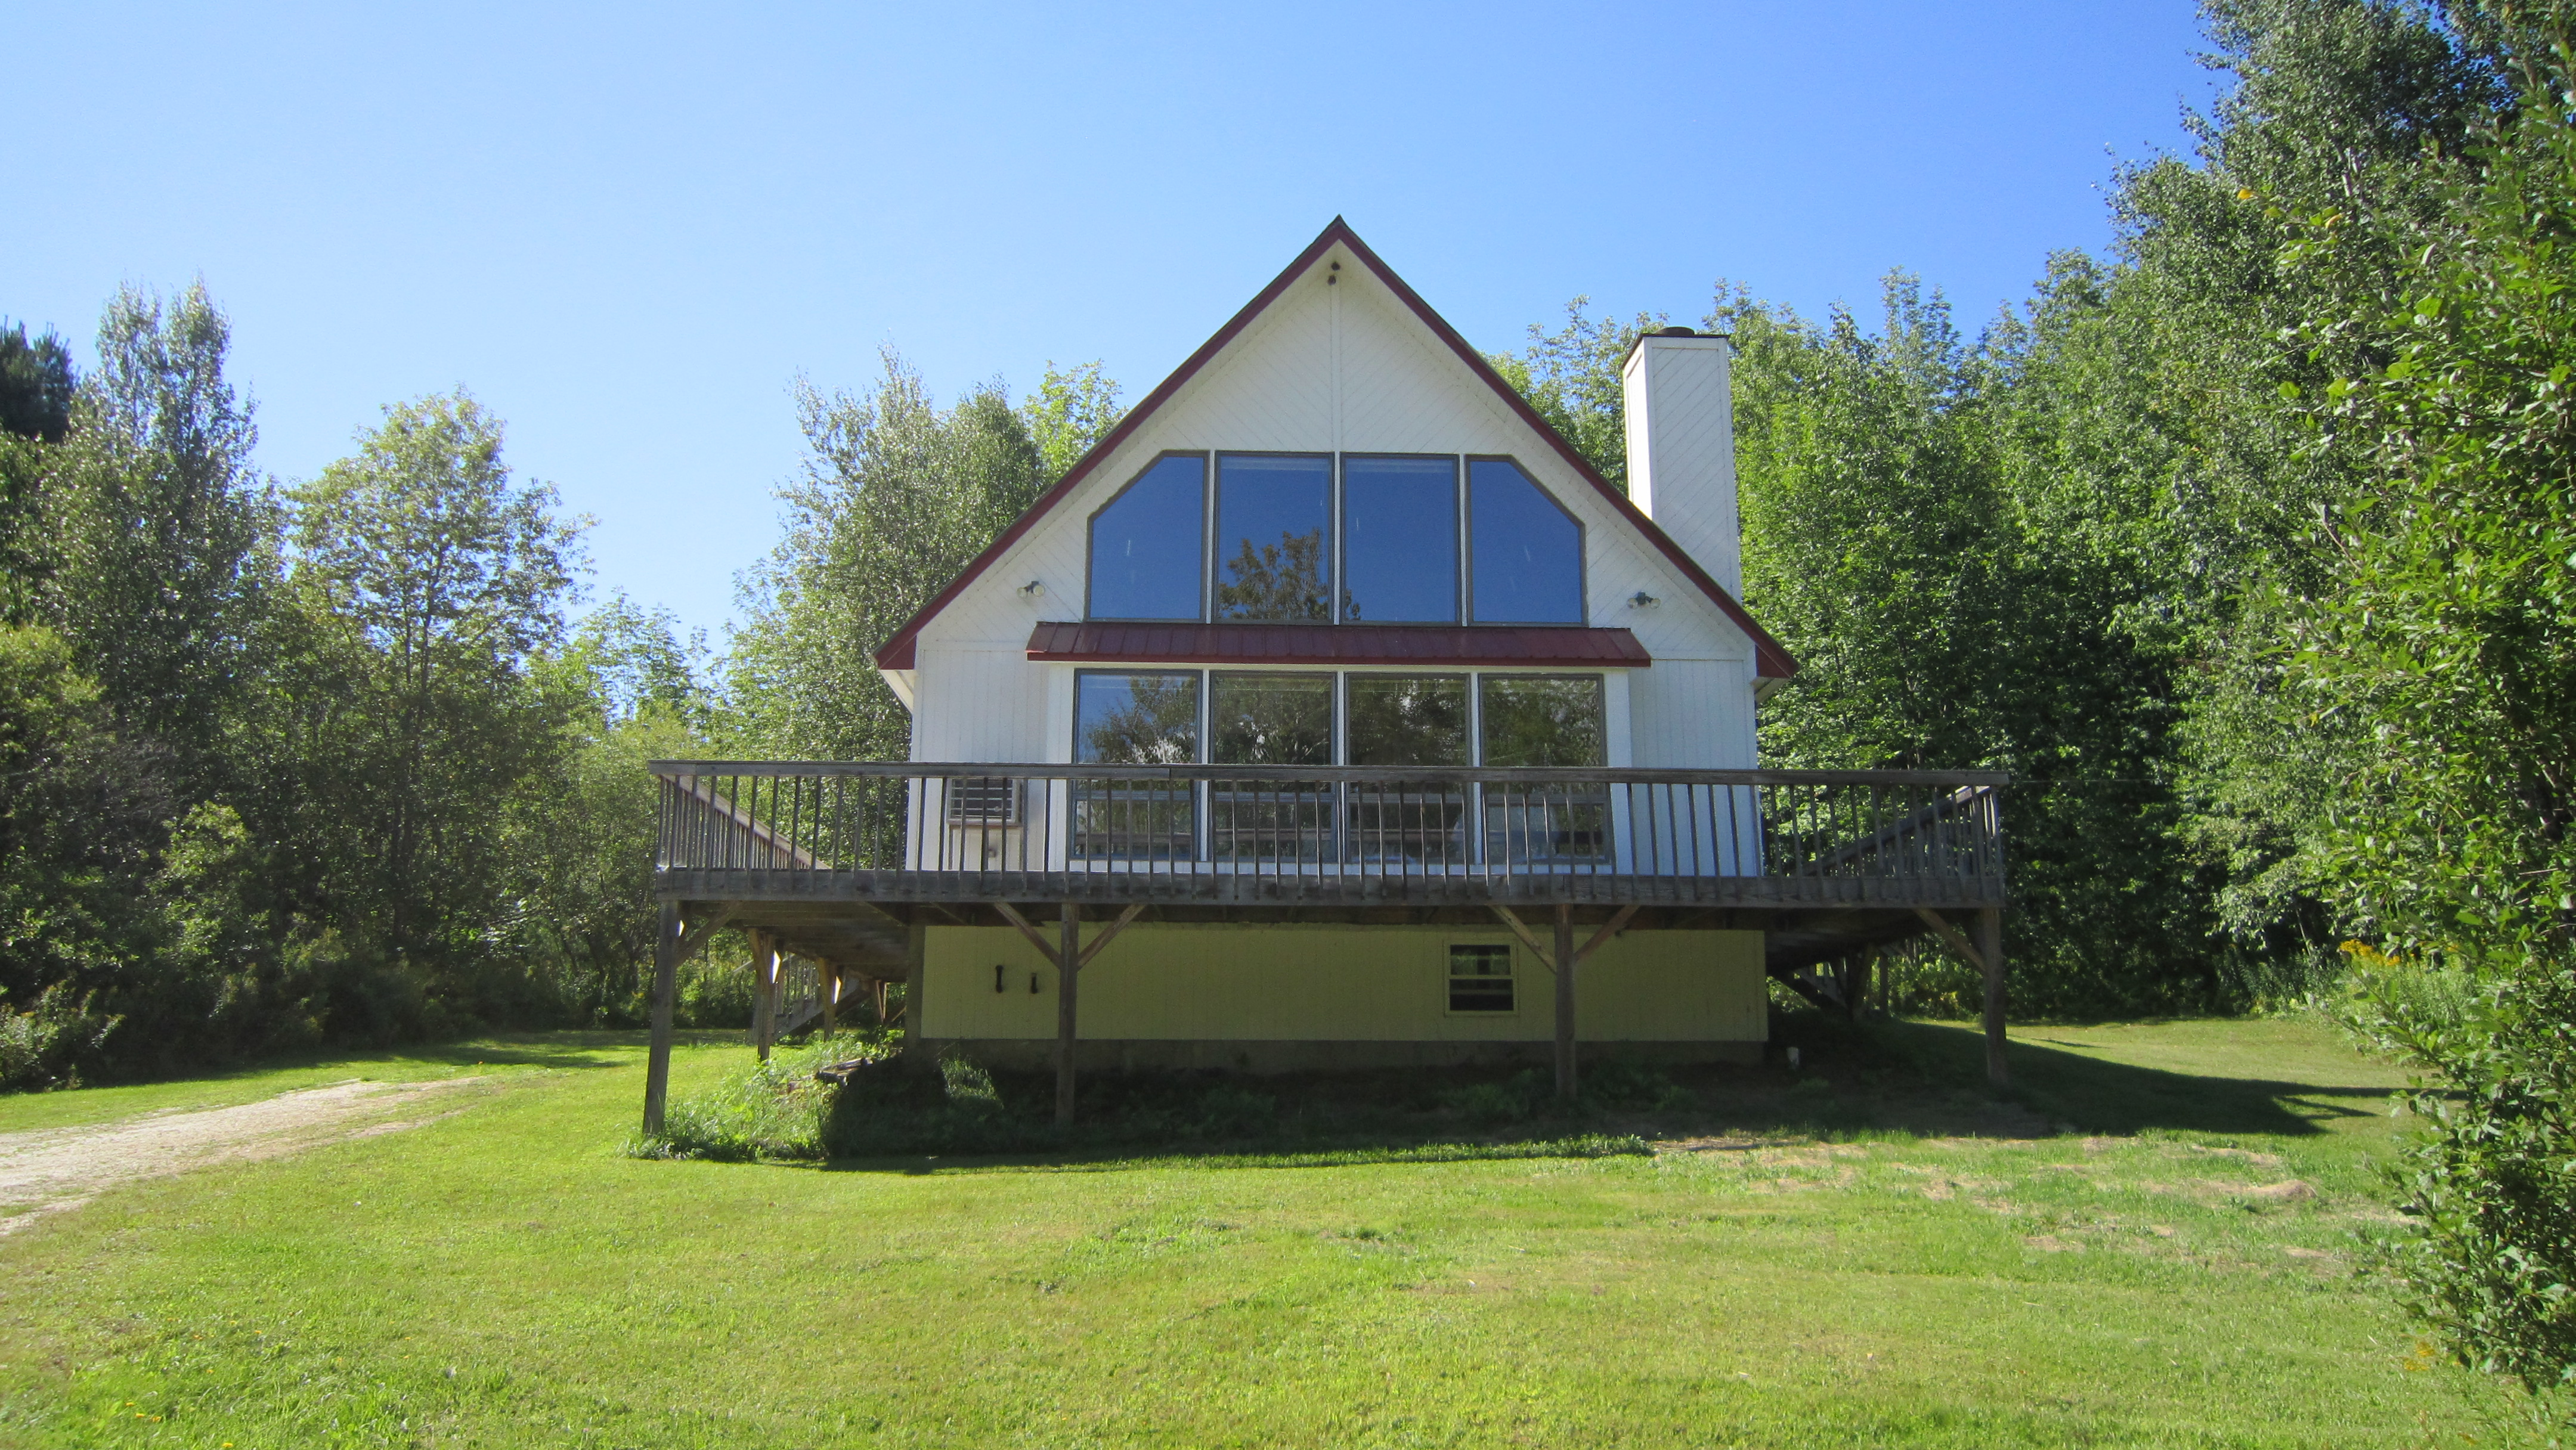 Casa Unifamiliar por un Venta en Mountain View Country Home 698 South Hill Rd Ludlow, Vermont, 05149 Estados Unidos